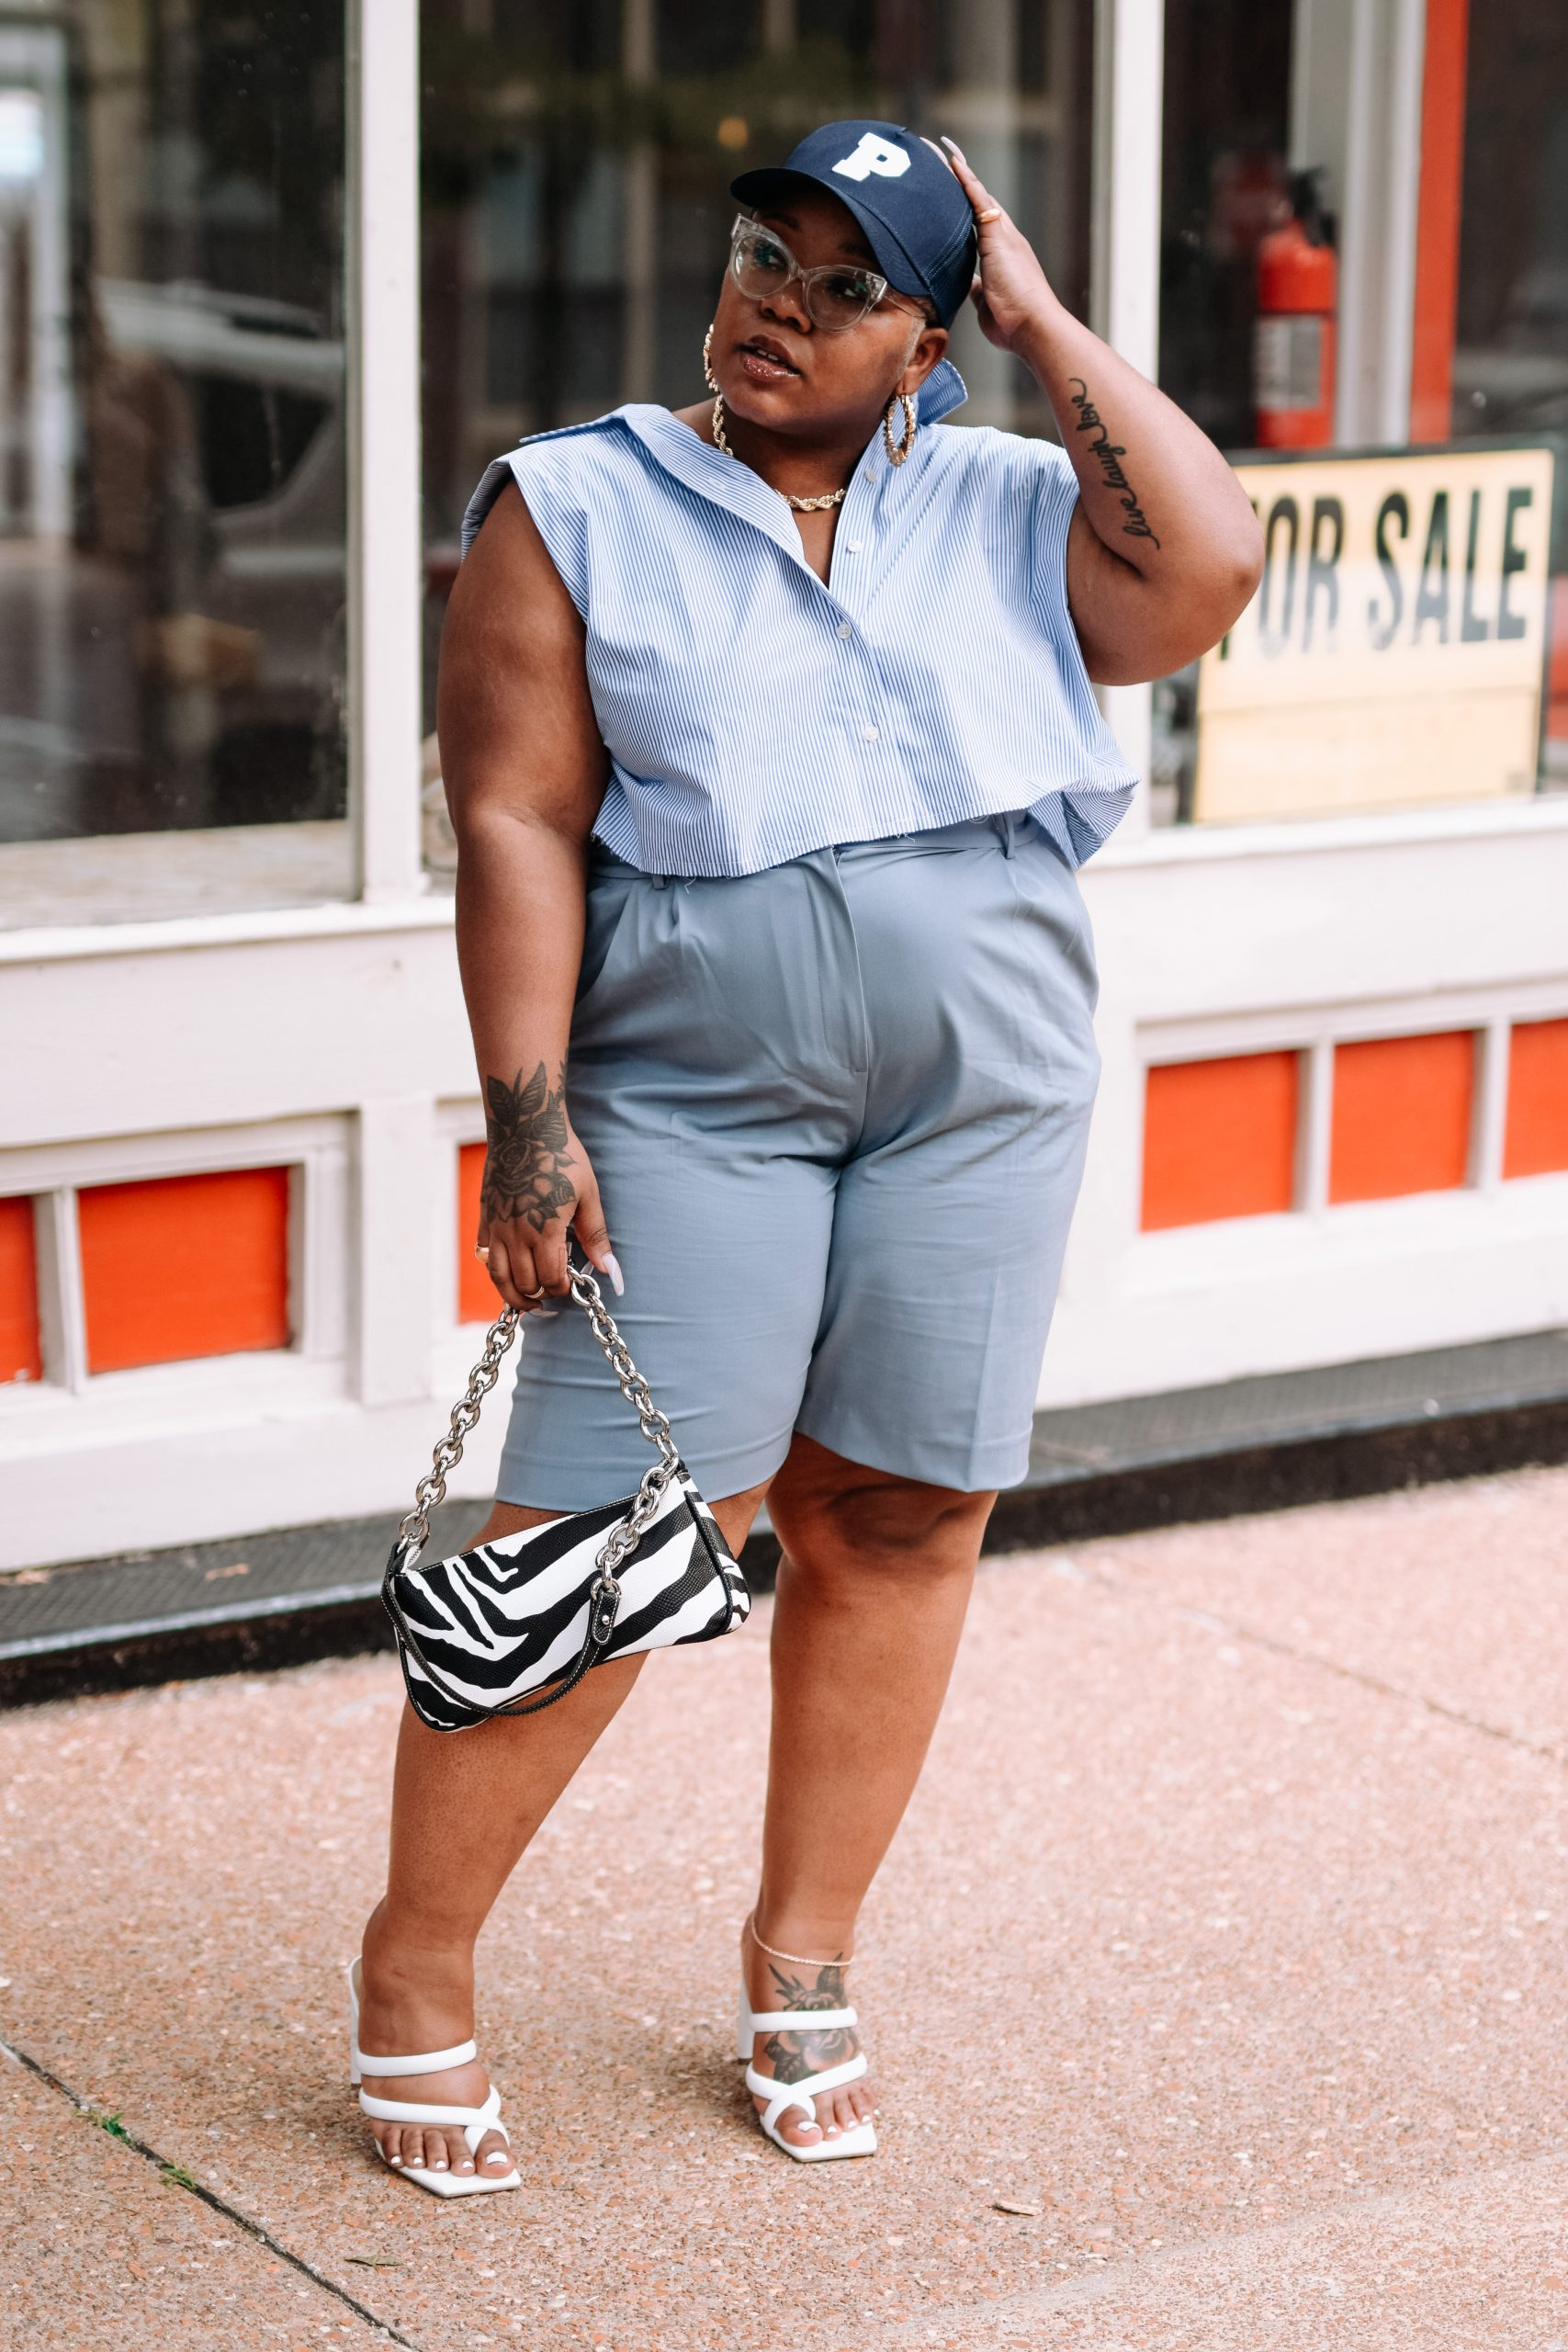 black plus size fashion and style influencer wearing dress bermuda shorts and a padded button up crop shirt from H&M on Cherokee St in St. Louis, MO